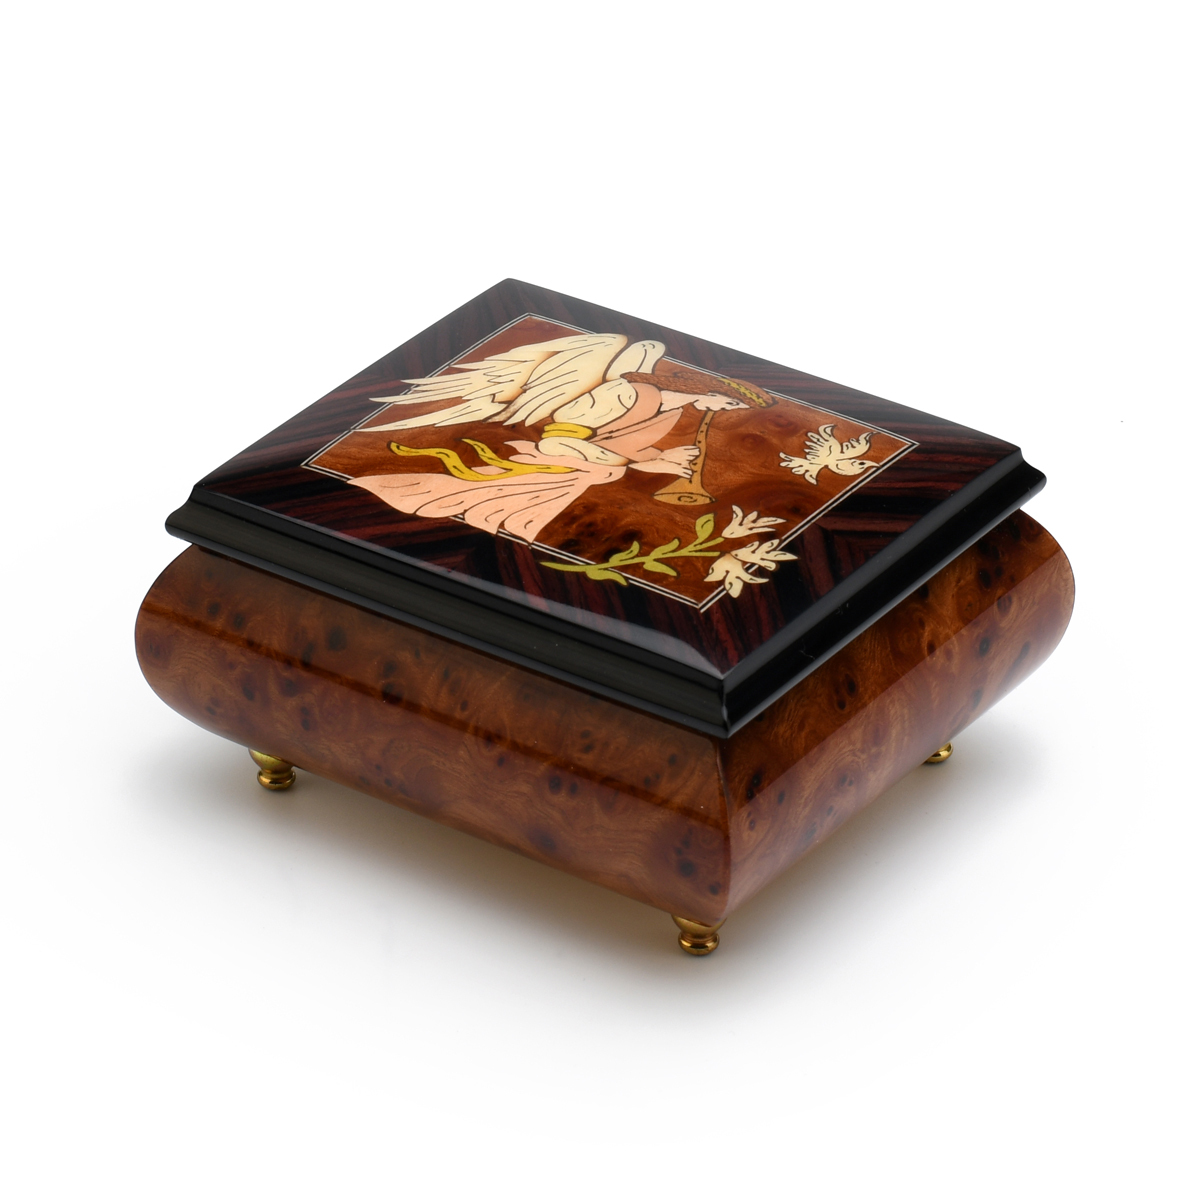 The Wood Inlay Design Features An Angel Playing A Horn / Duduk